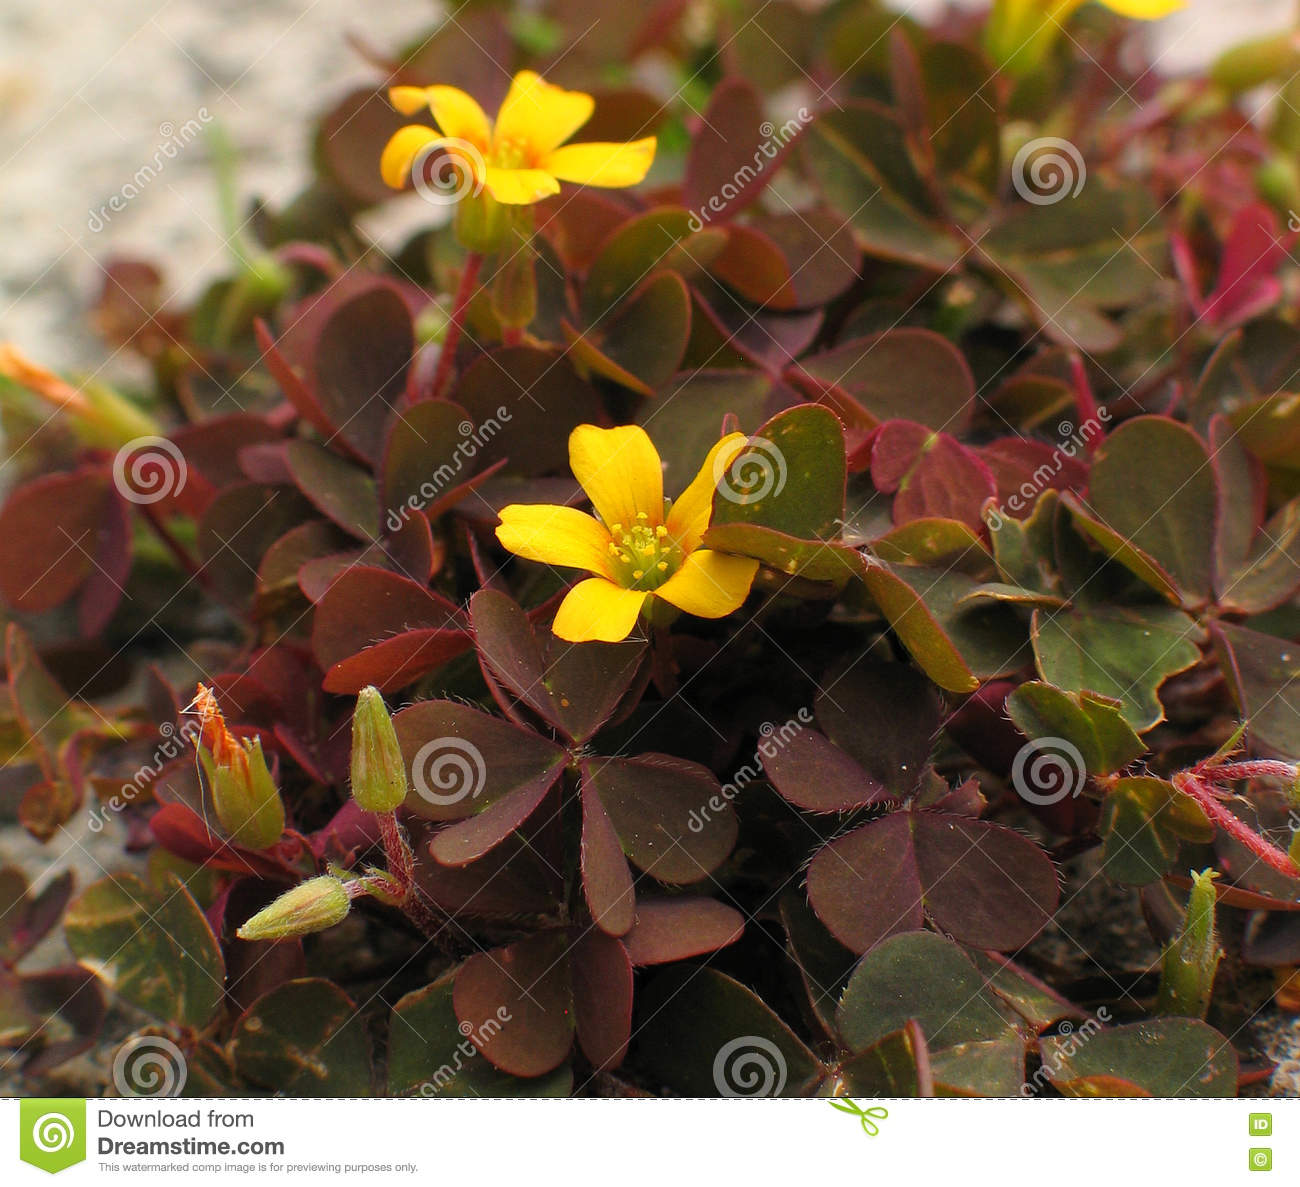 Creeping Woodsorrel leaves, flowers & fruits